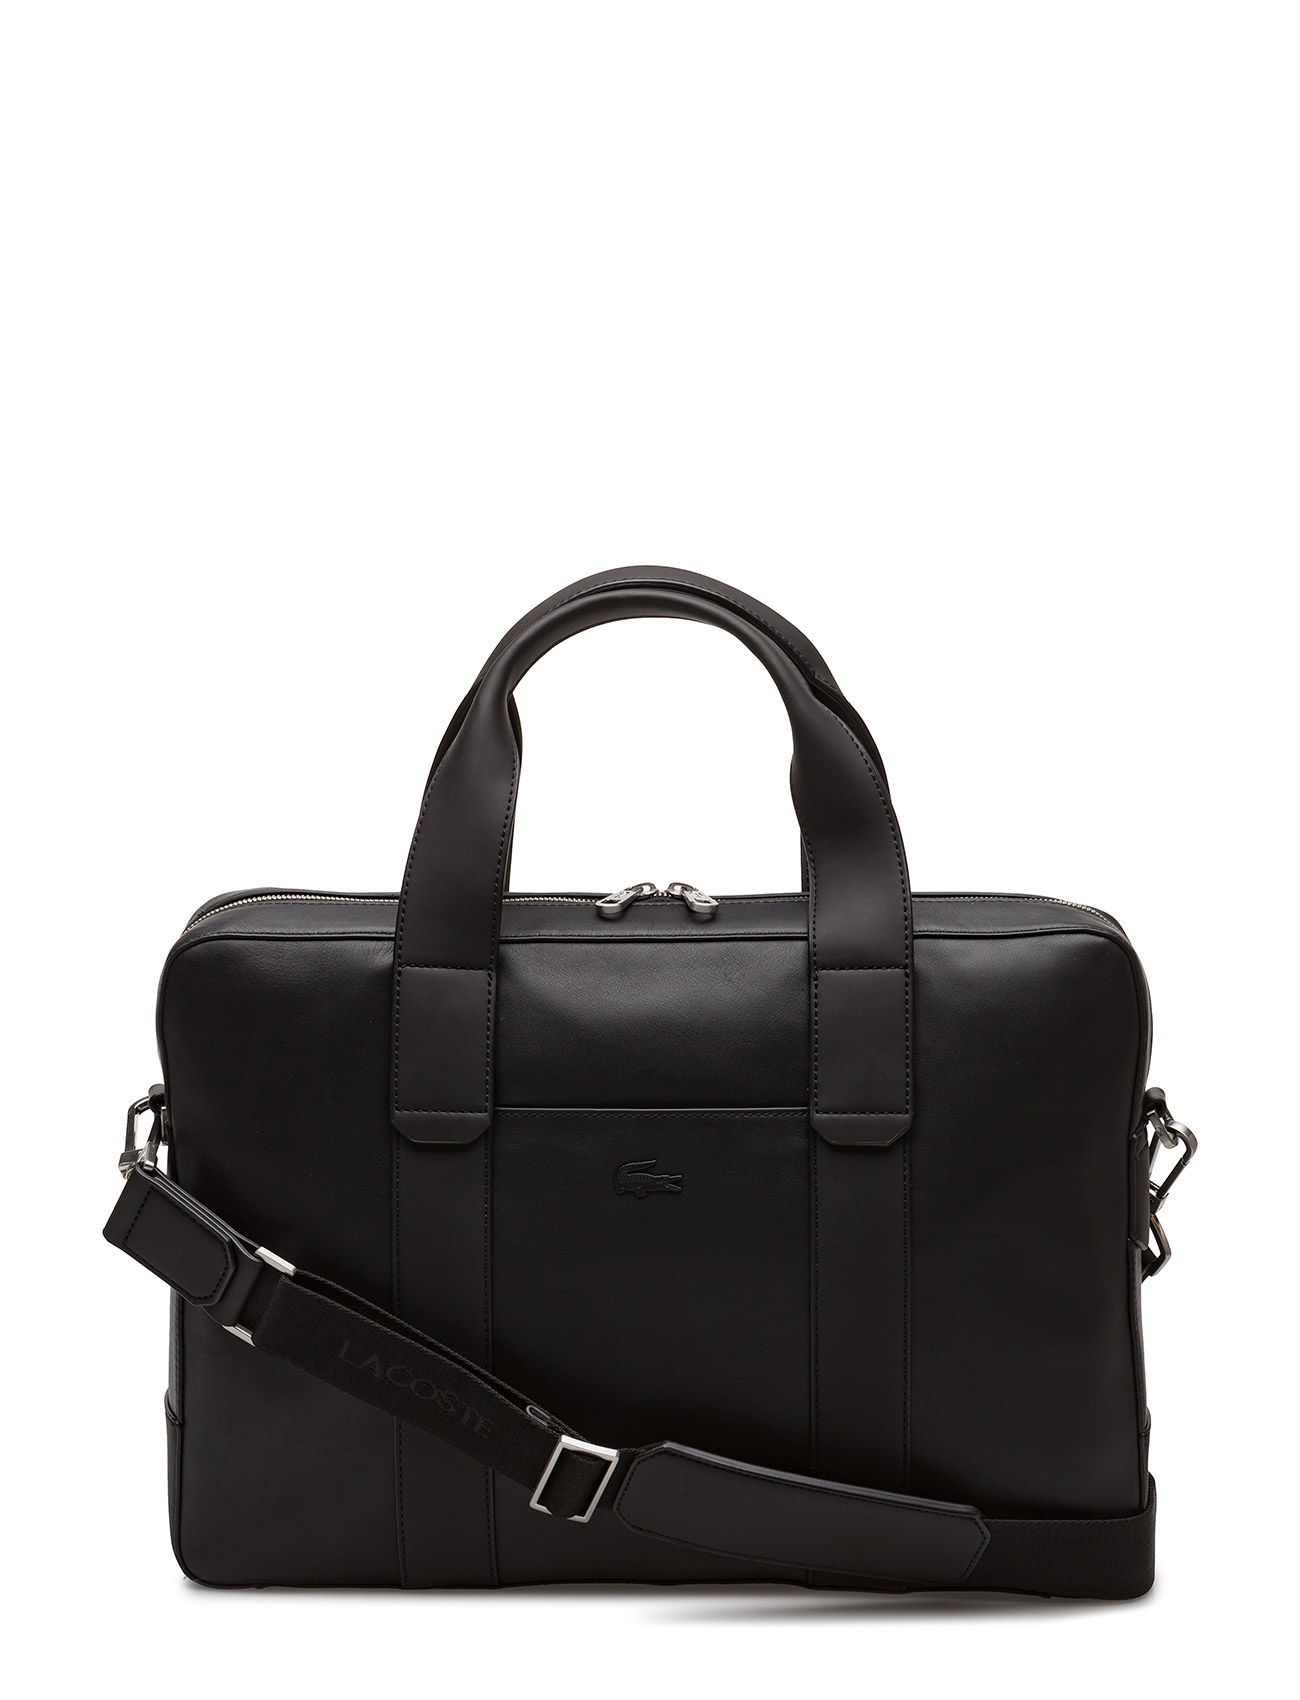 lacoste Leather goods luggage fra boozt.com dk